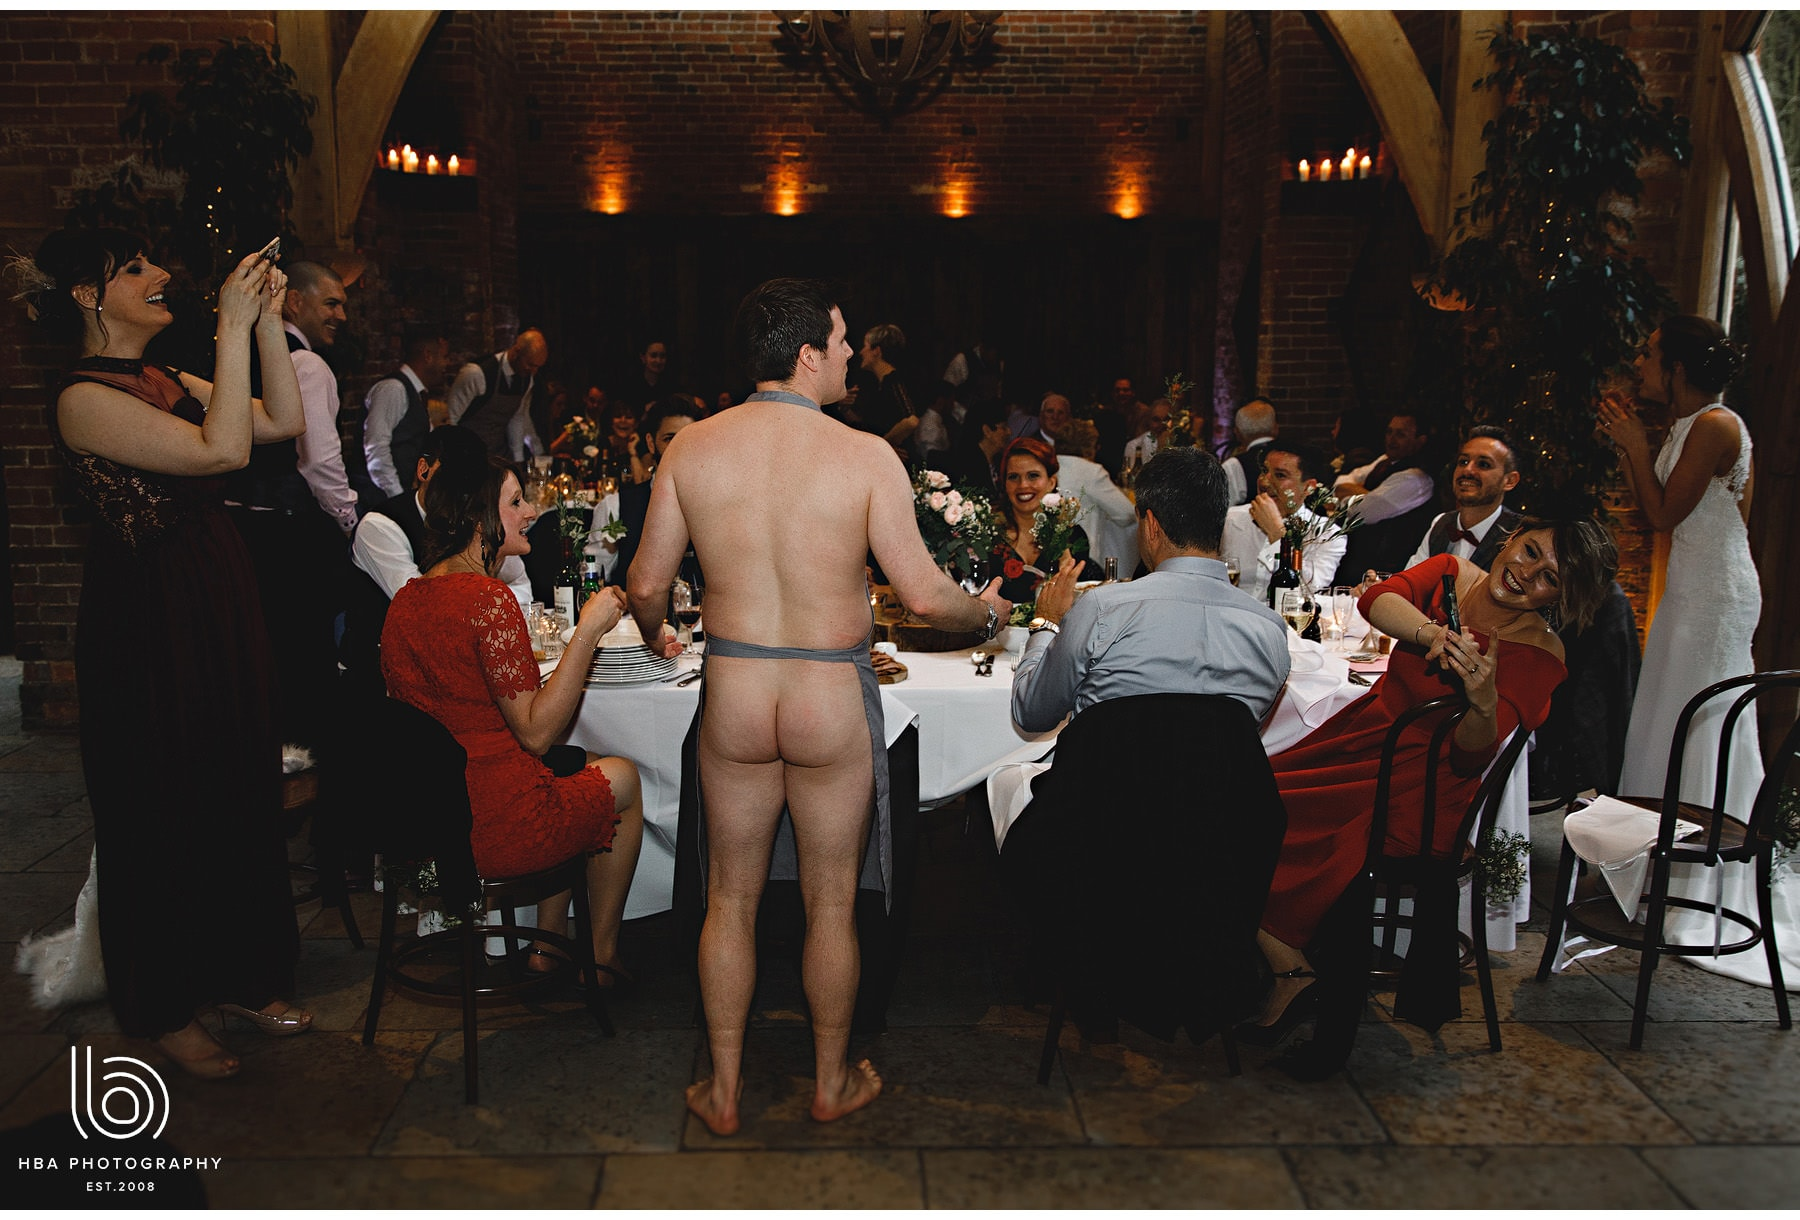 a naked guest serving dinner